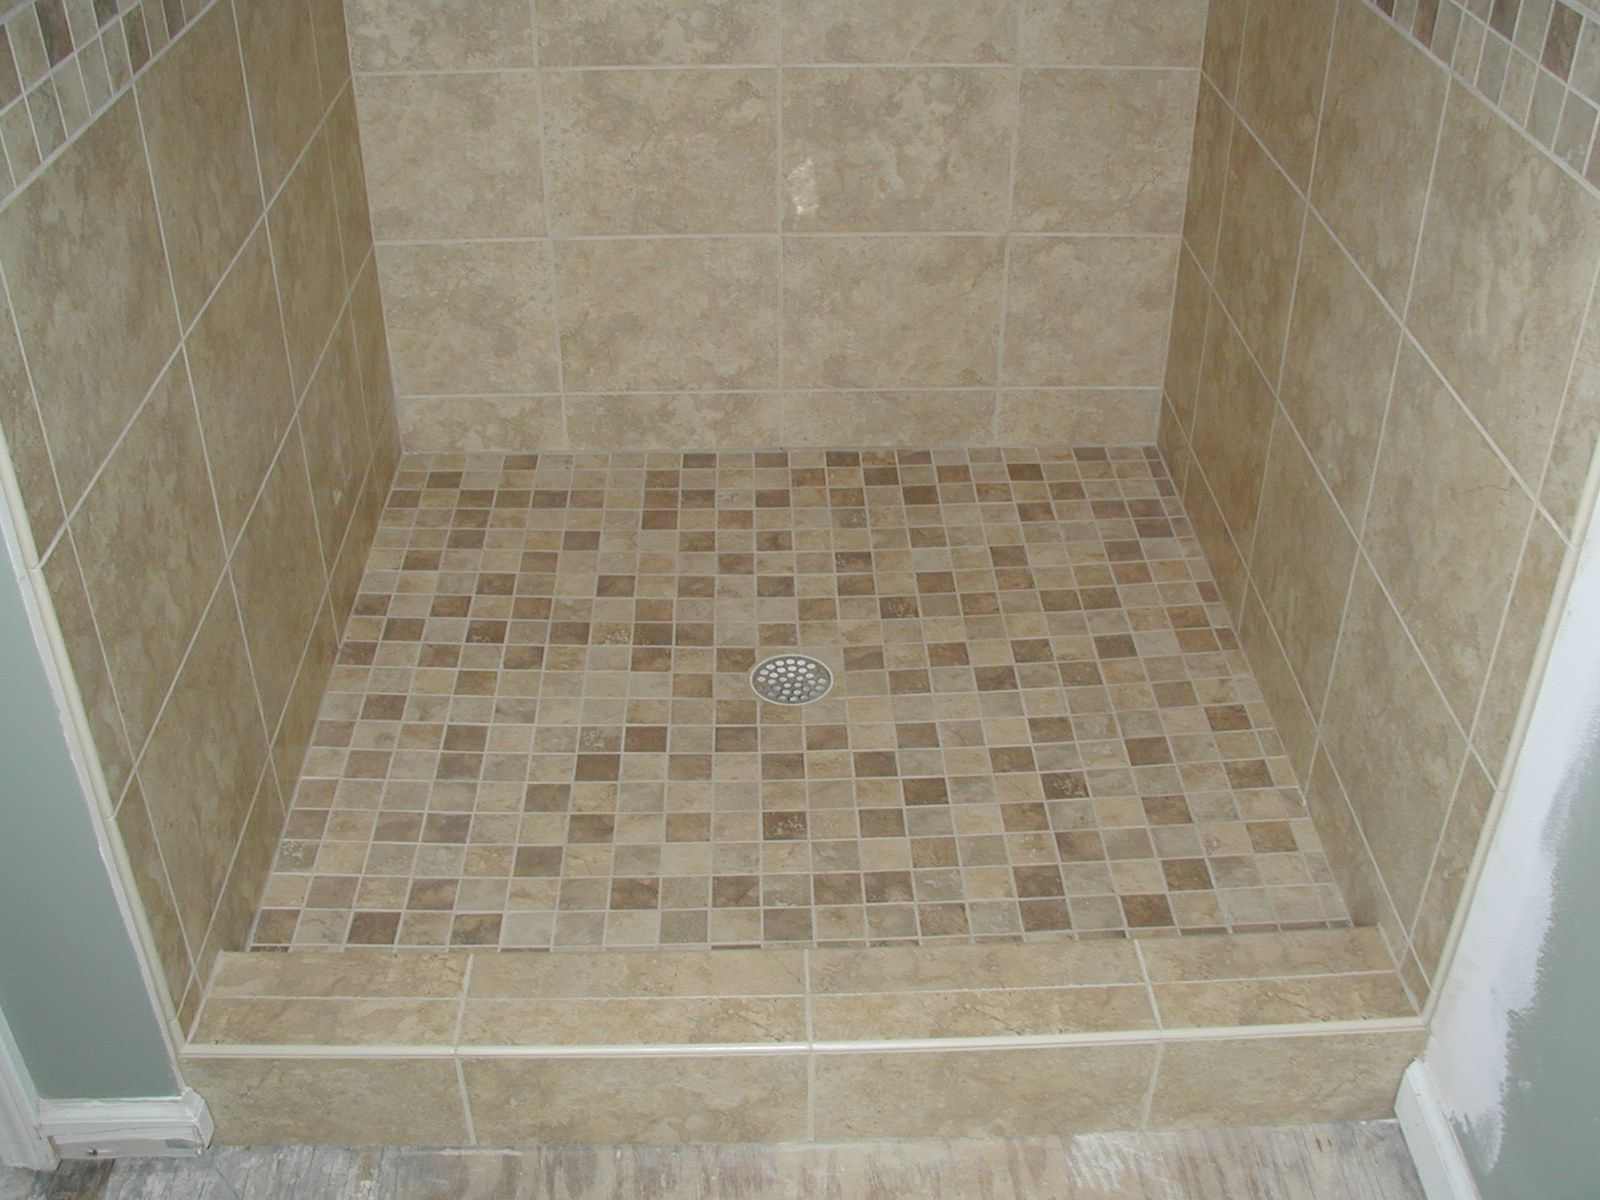 Bathroom tile showers with half wall of glass tiled shower marvelous how to tile a shower floor with river rock and how much does it cost to tile a shower floor doublecrazyfo Image collections